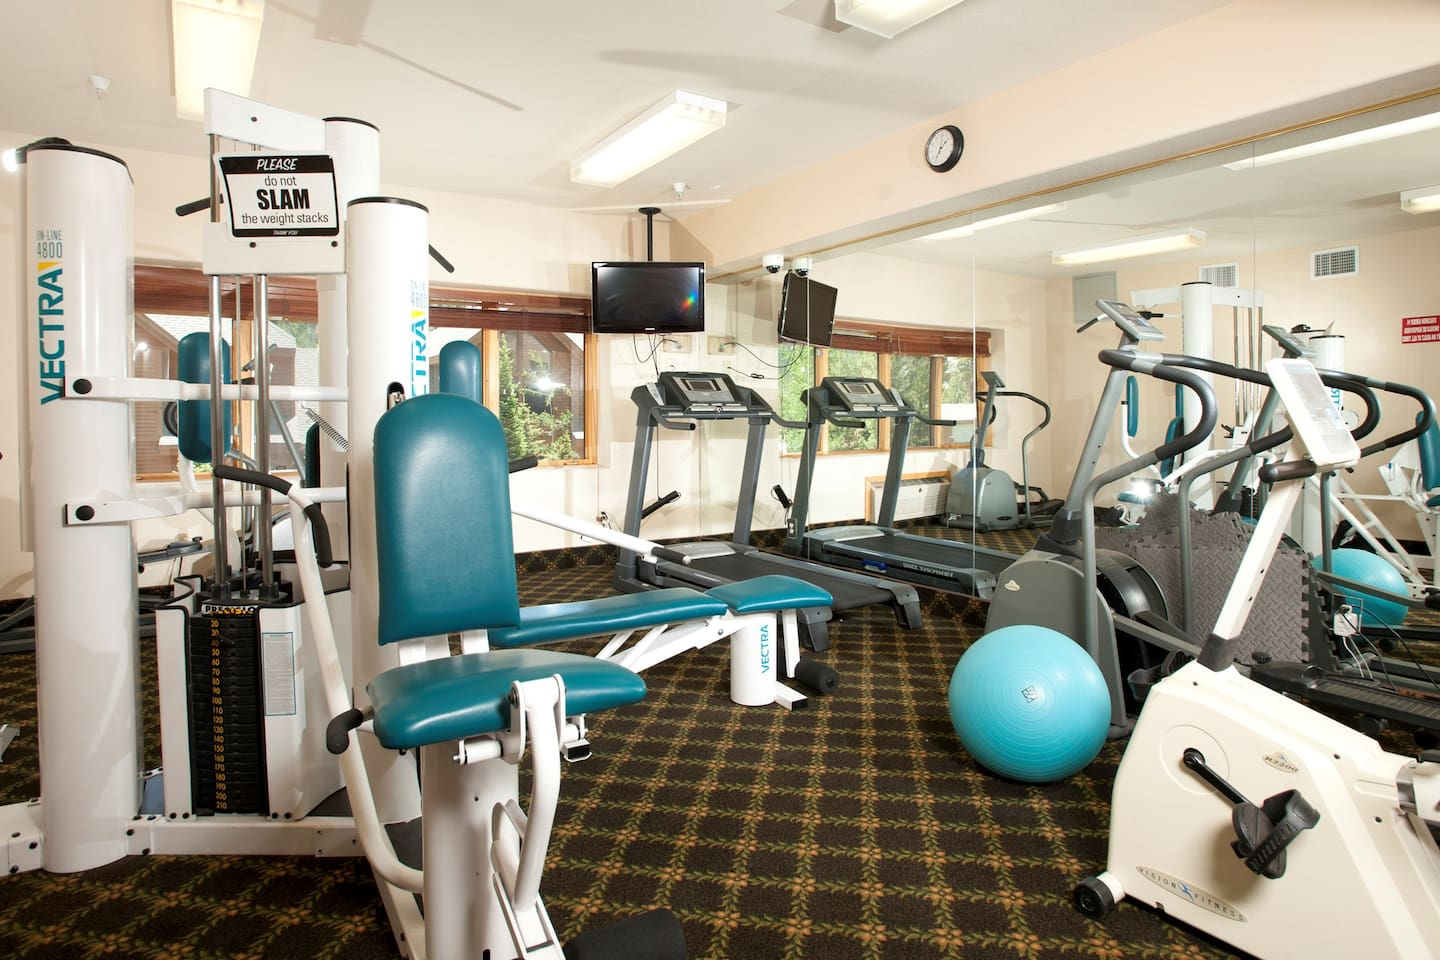 Don't forget to check out the fitness suite!